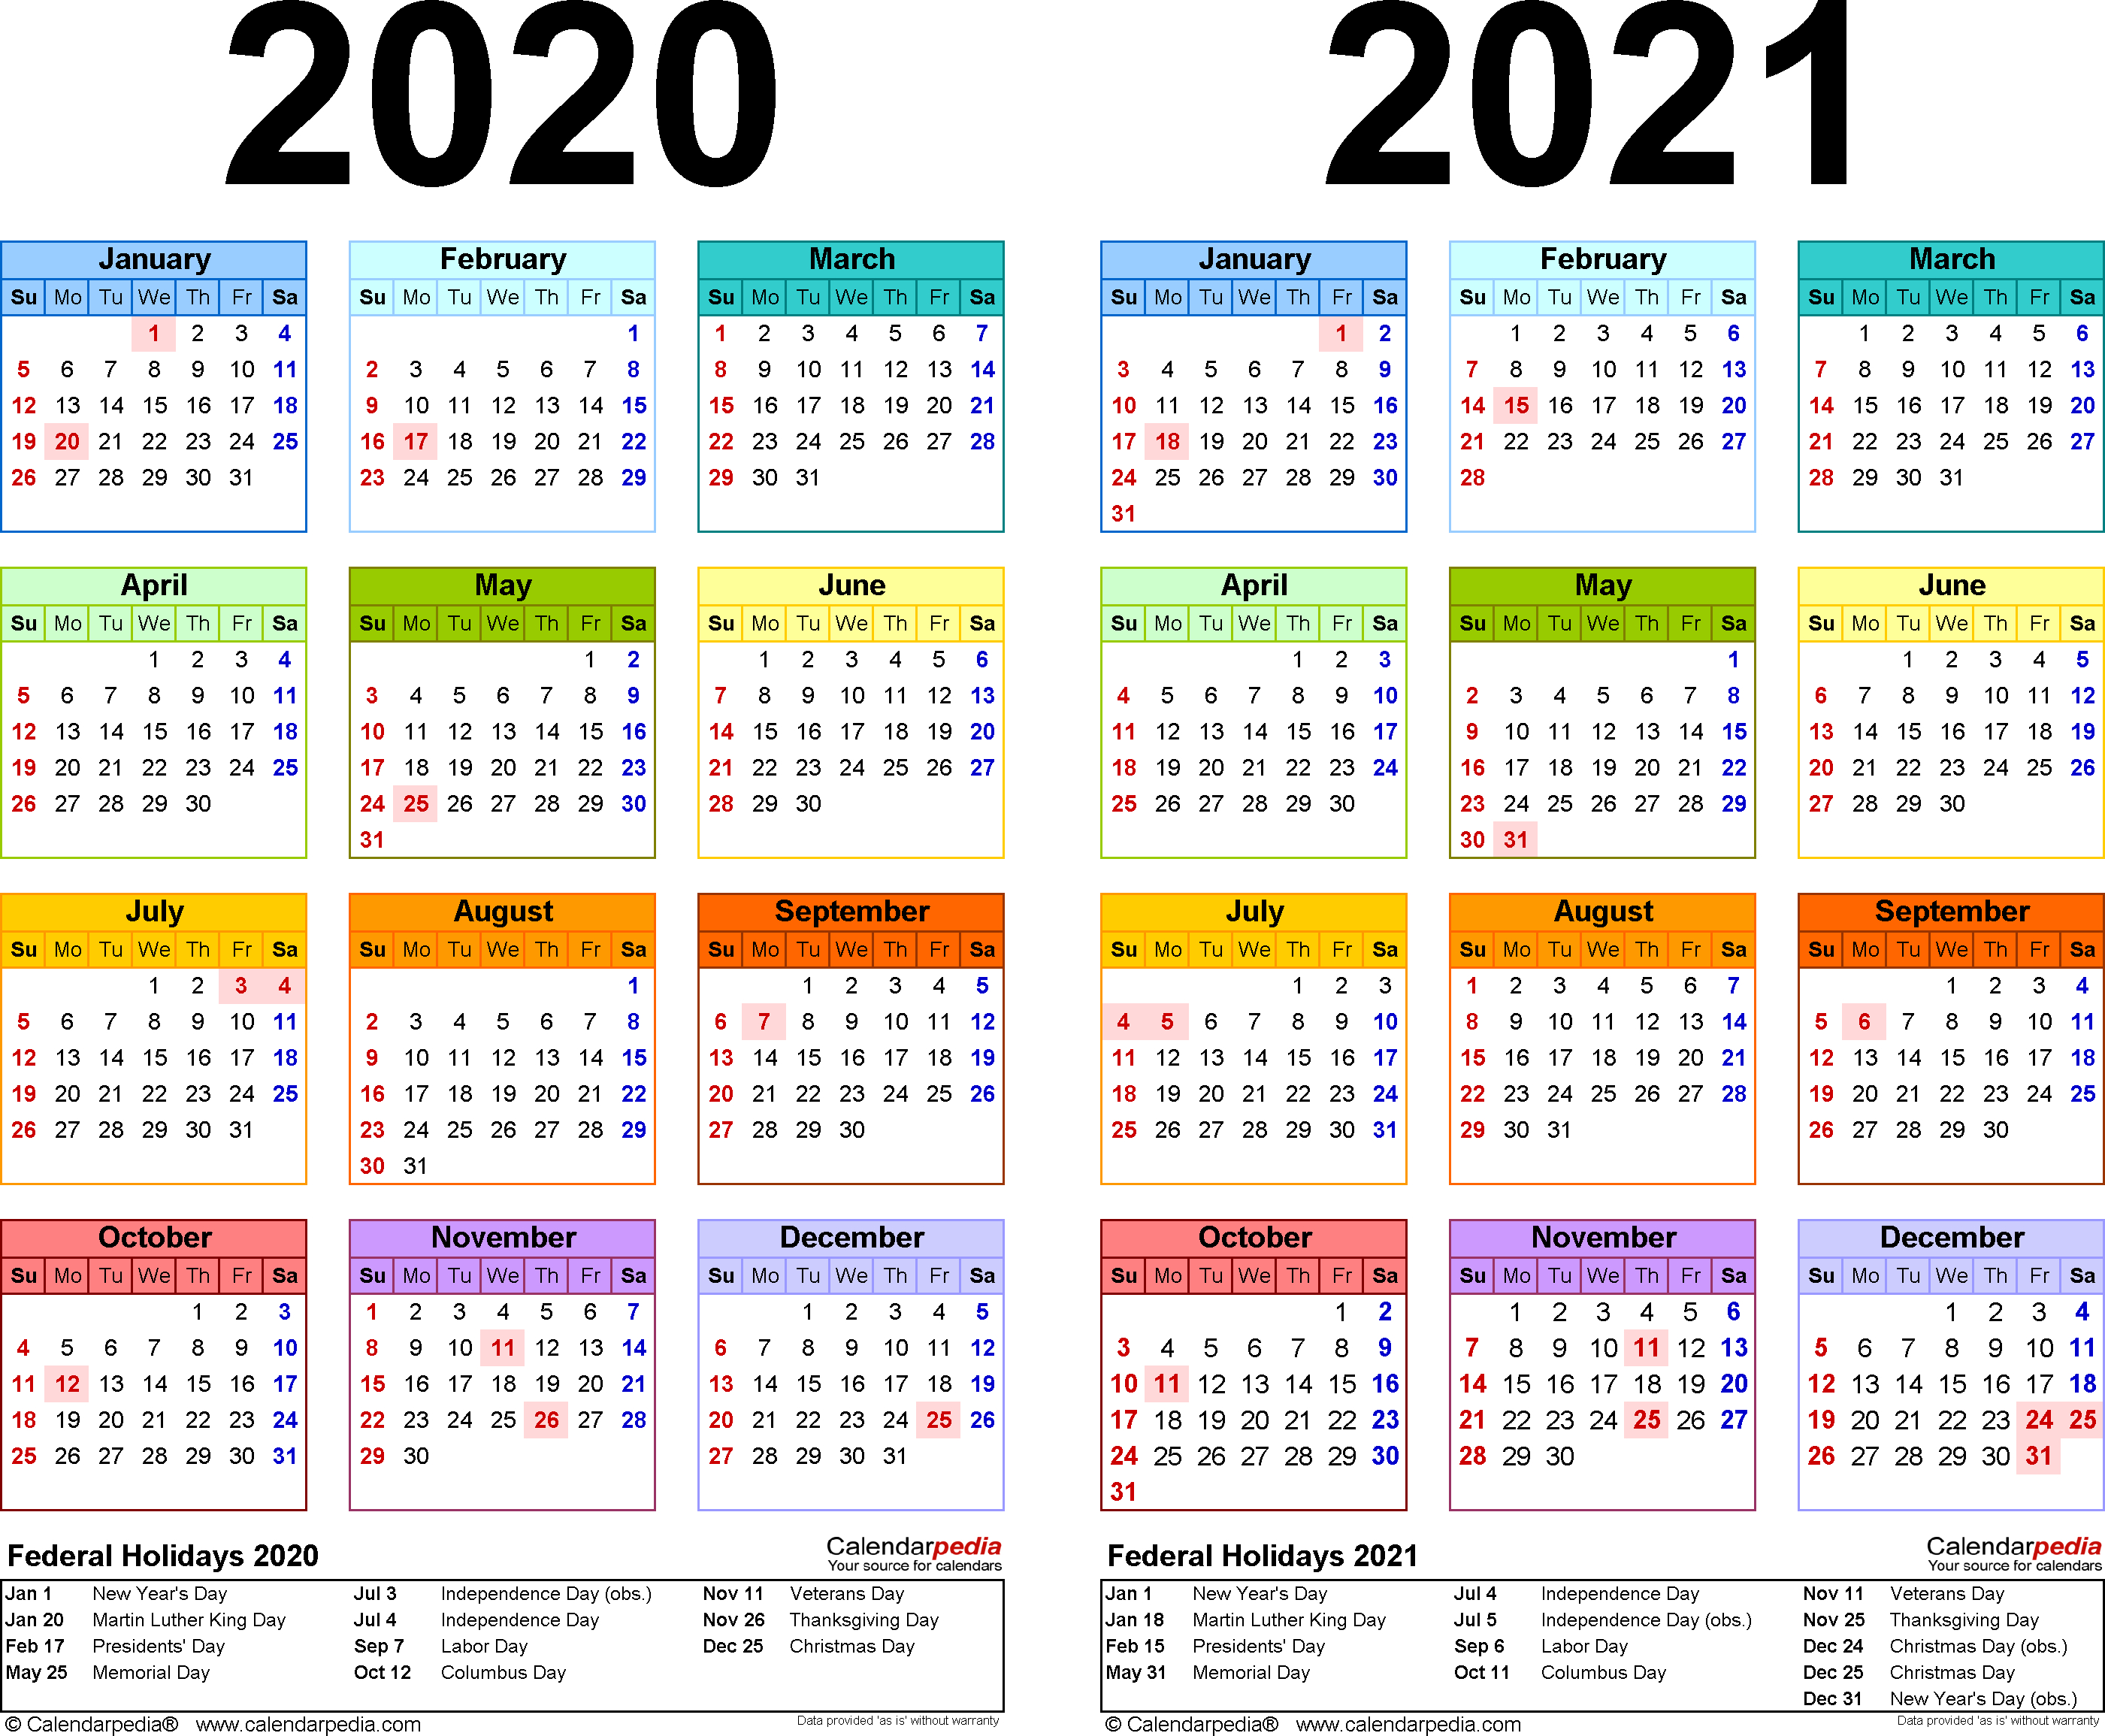 2020-2021 Calendar - Free Printable Two-Year Pdf Calendars